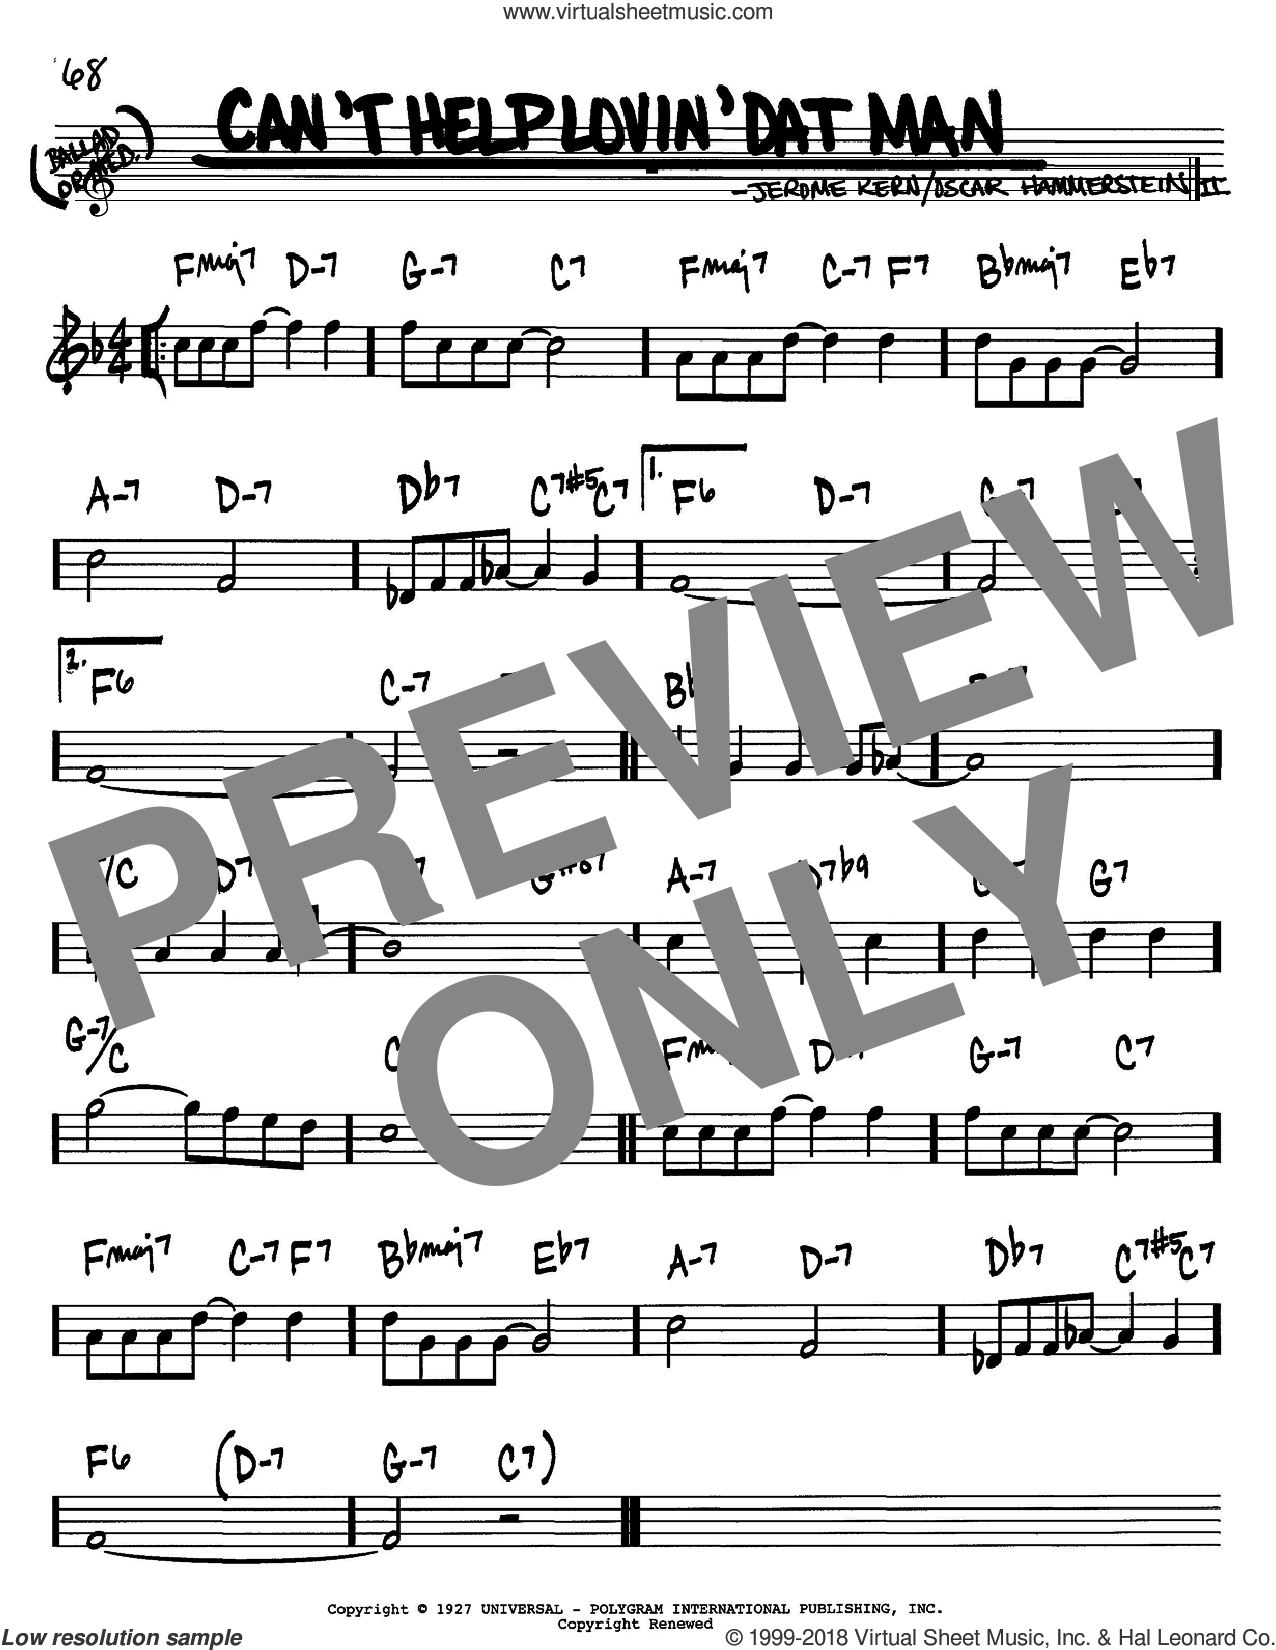 Can't Help Lovin' Dat Man sheet music for voice and other instruments (Bb) by Oscar II Hammerstein